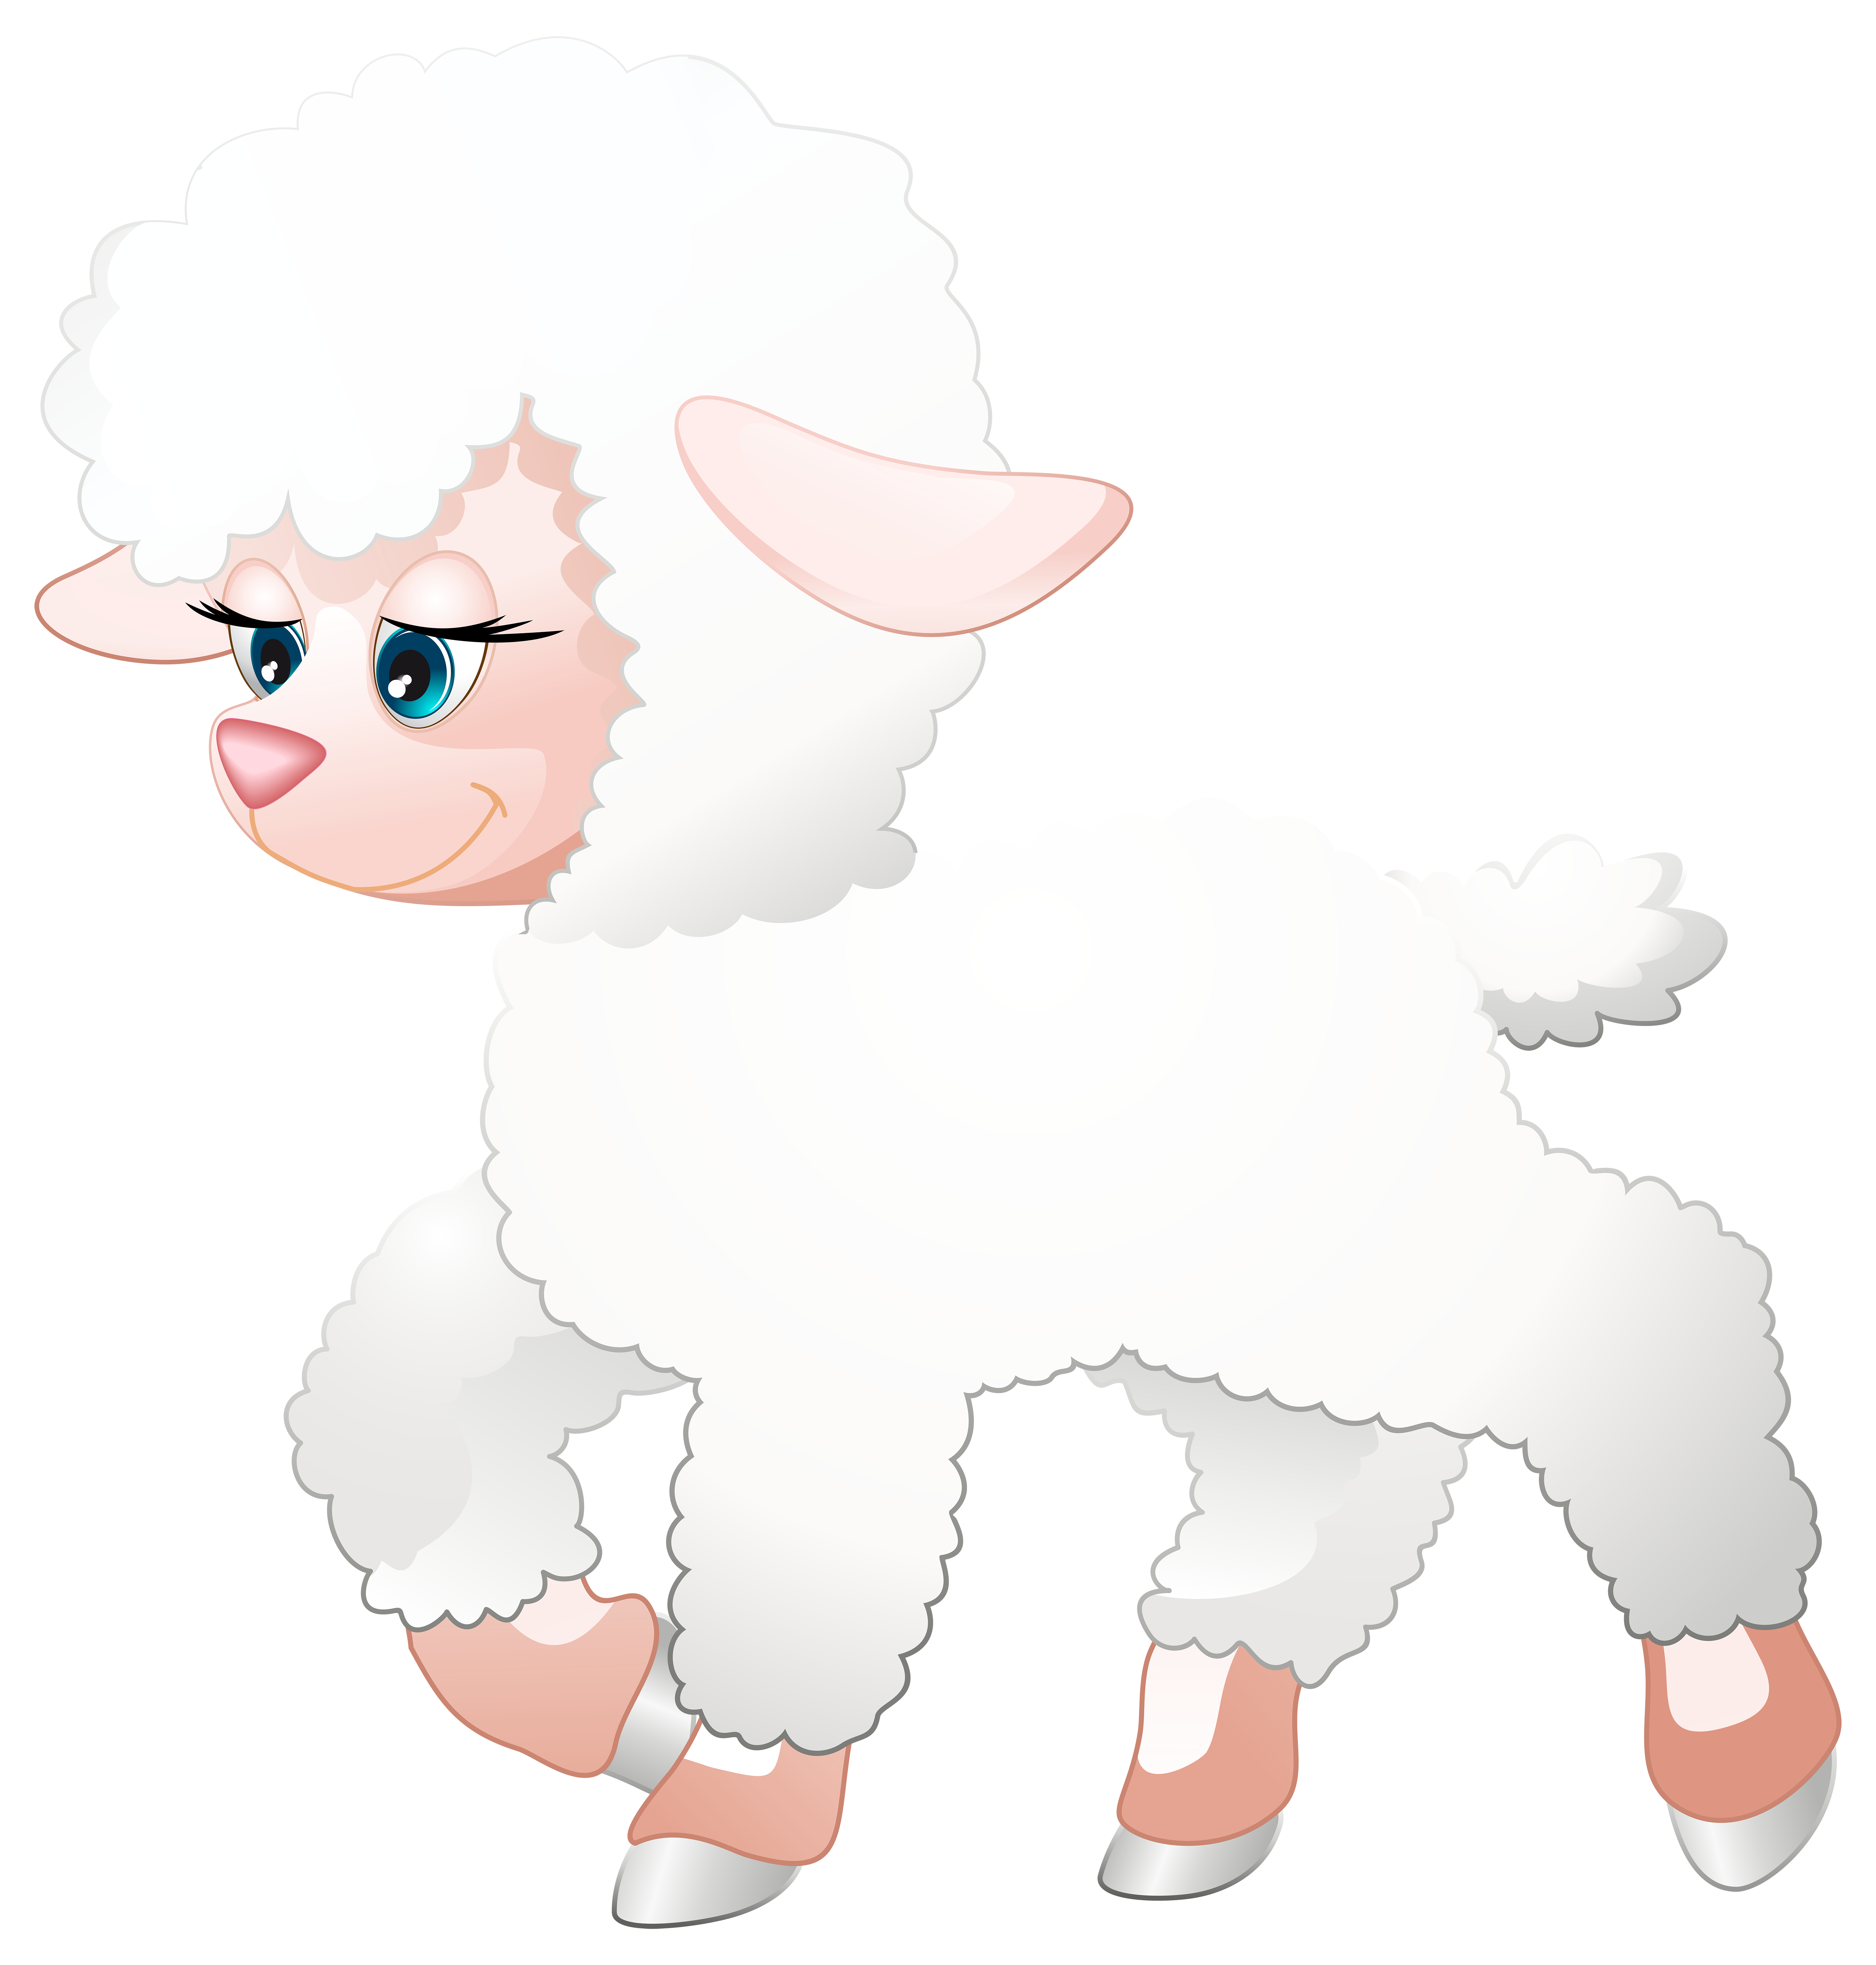 Lamb clipart sheep group. Cute transparent png clip